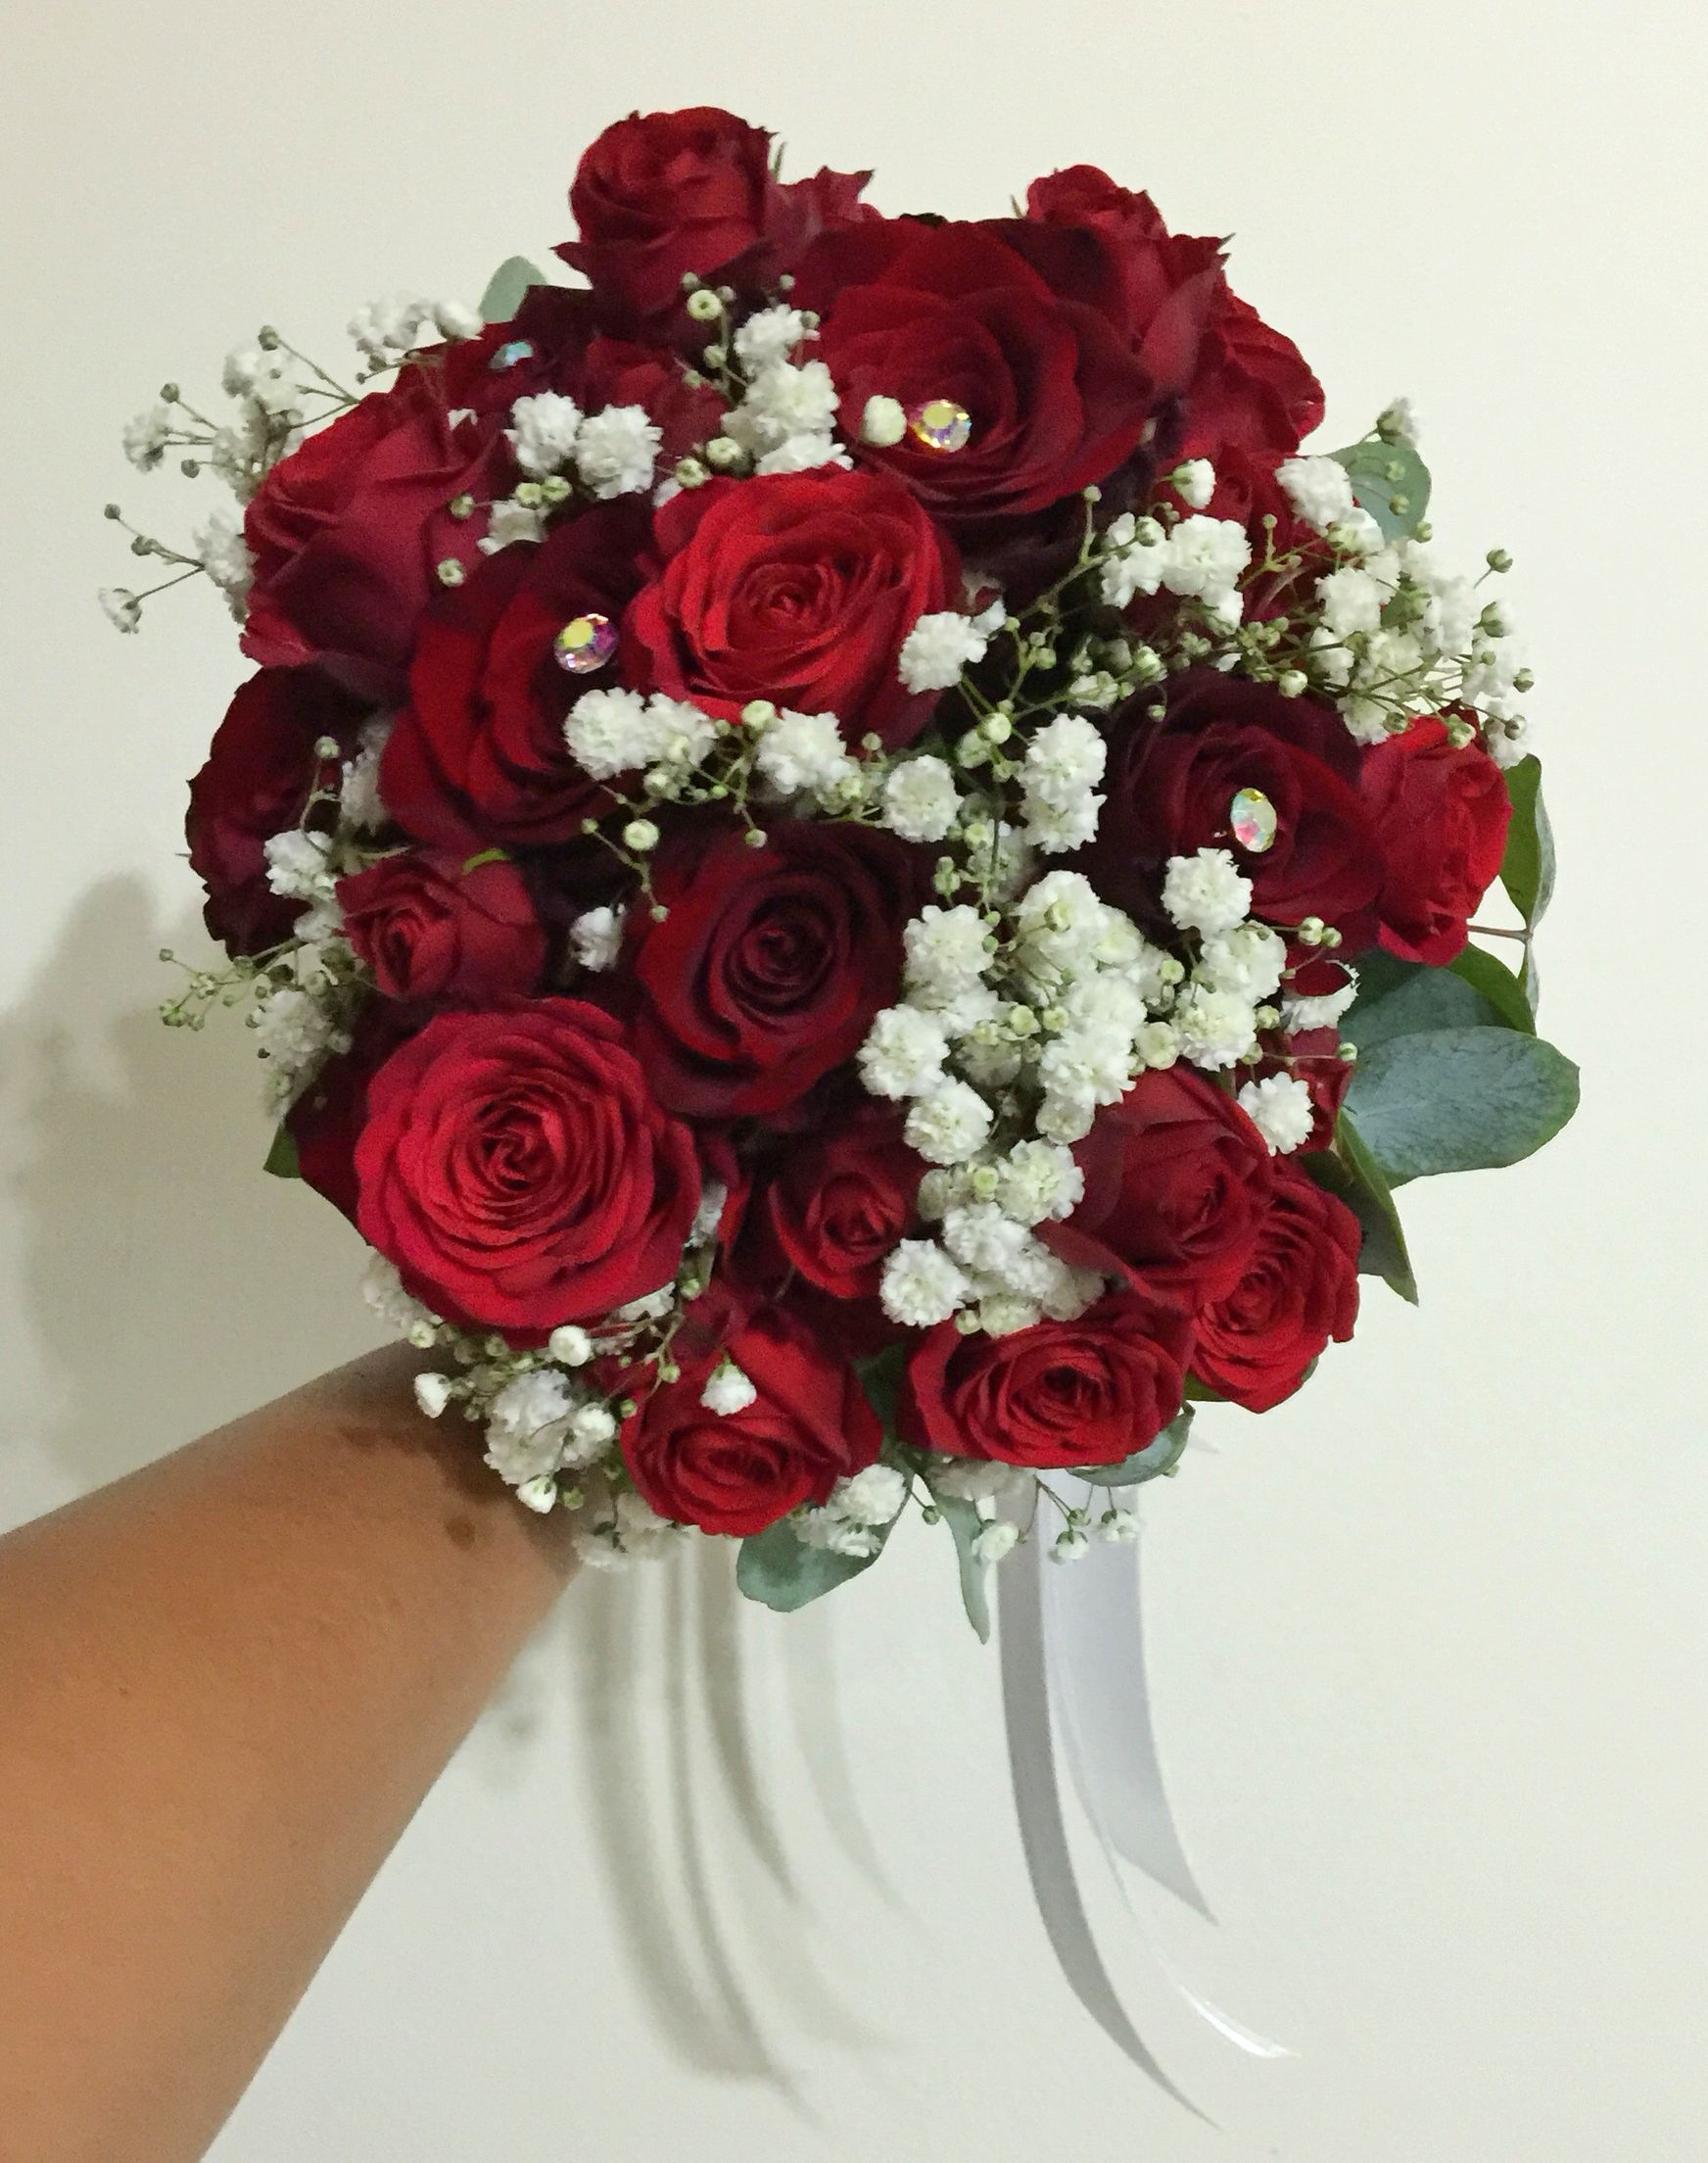 Simple red roses babys breath eucalyptus bridal bouquet www simple red roses babys breath amp eucalyptus bridal bouquet myreika izmirmasajfo